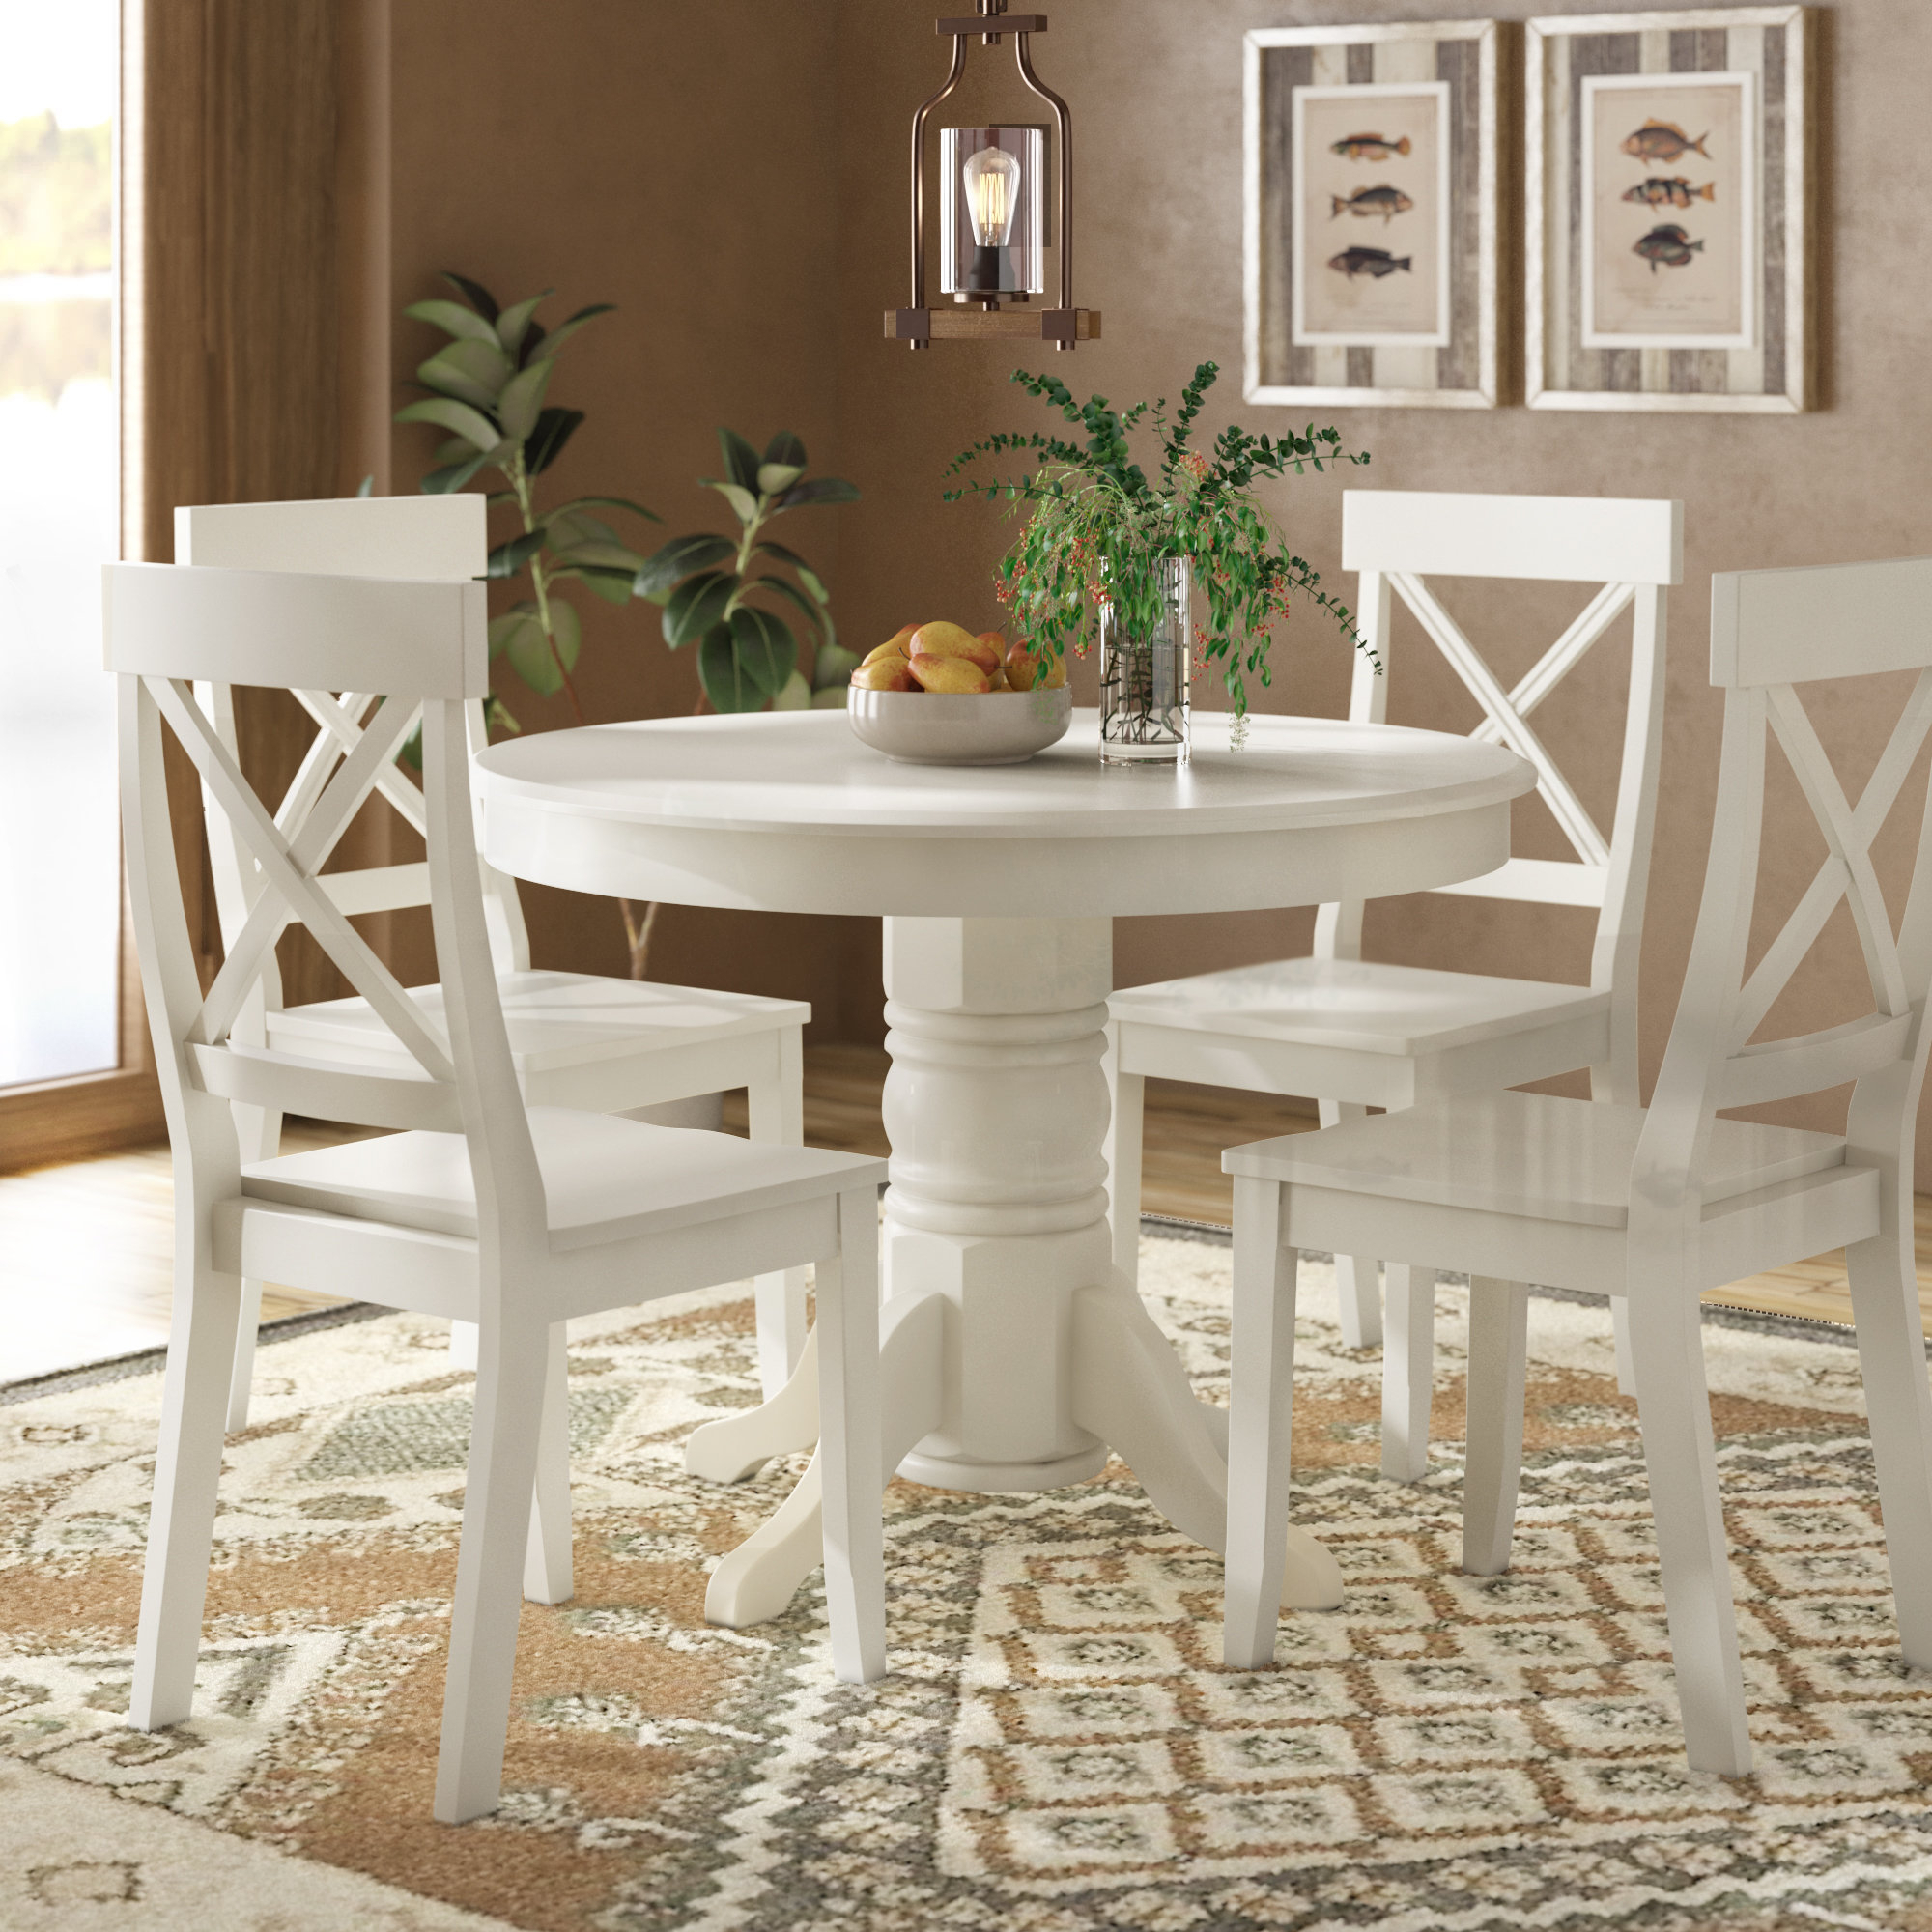 Standridge 5 Piece Dining Set Regarding Most Up To Date Springfield 3 Piece Dining Sets (View 12 of 20)